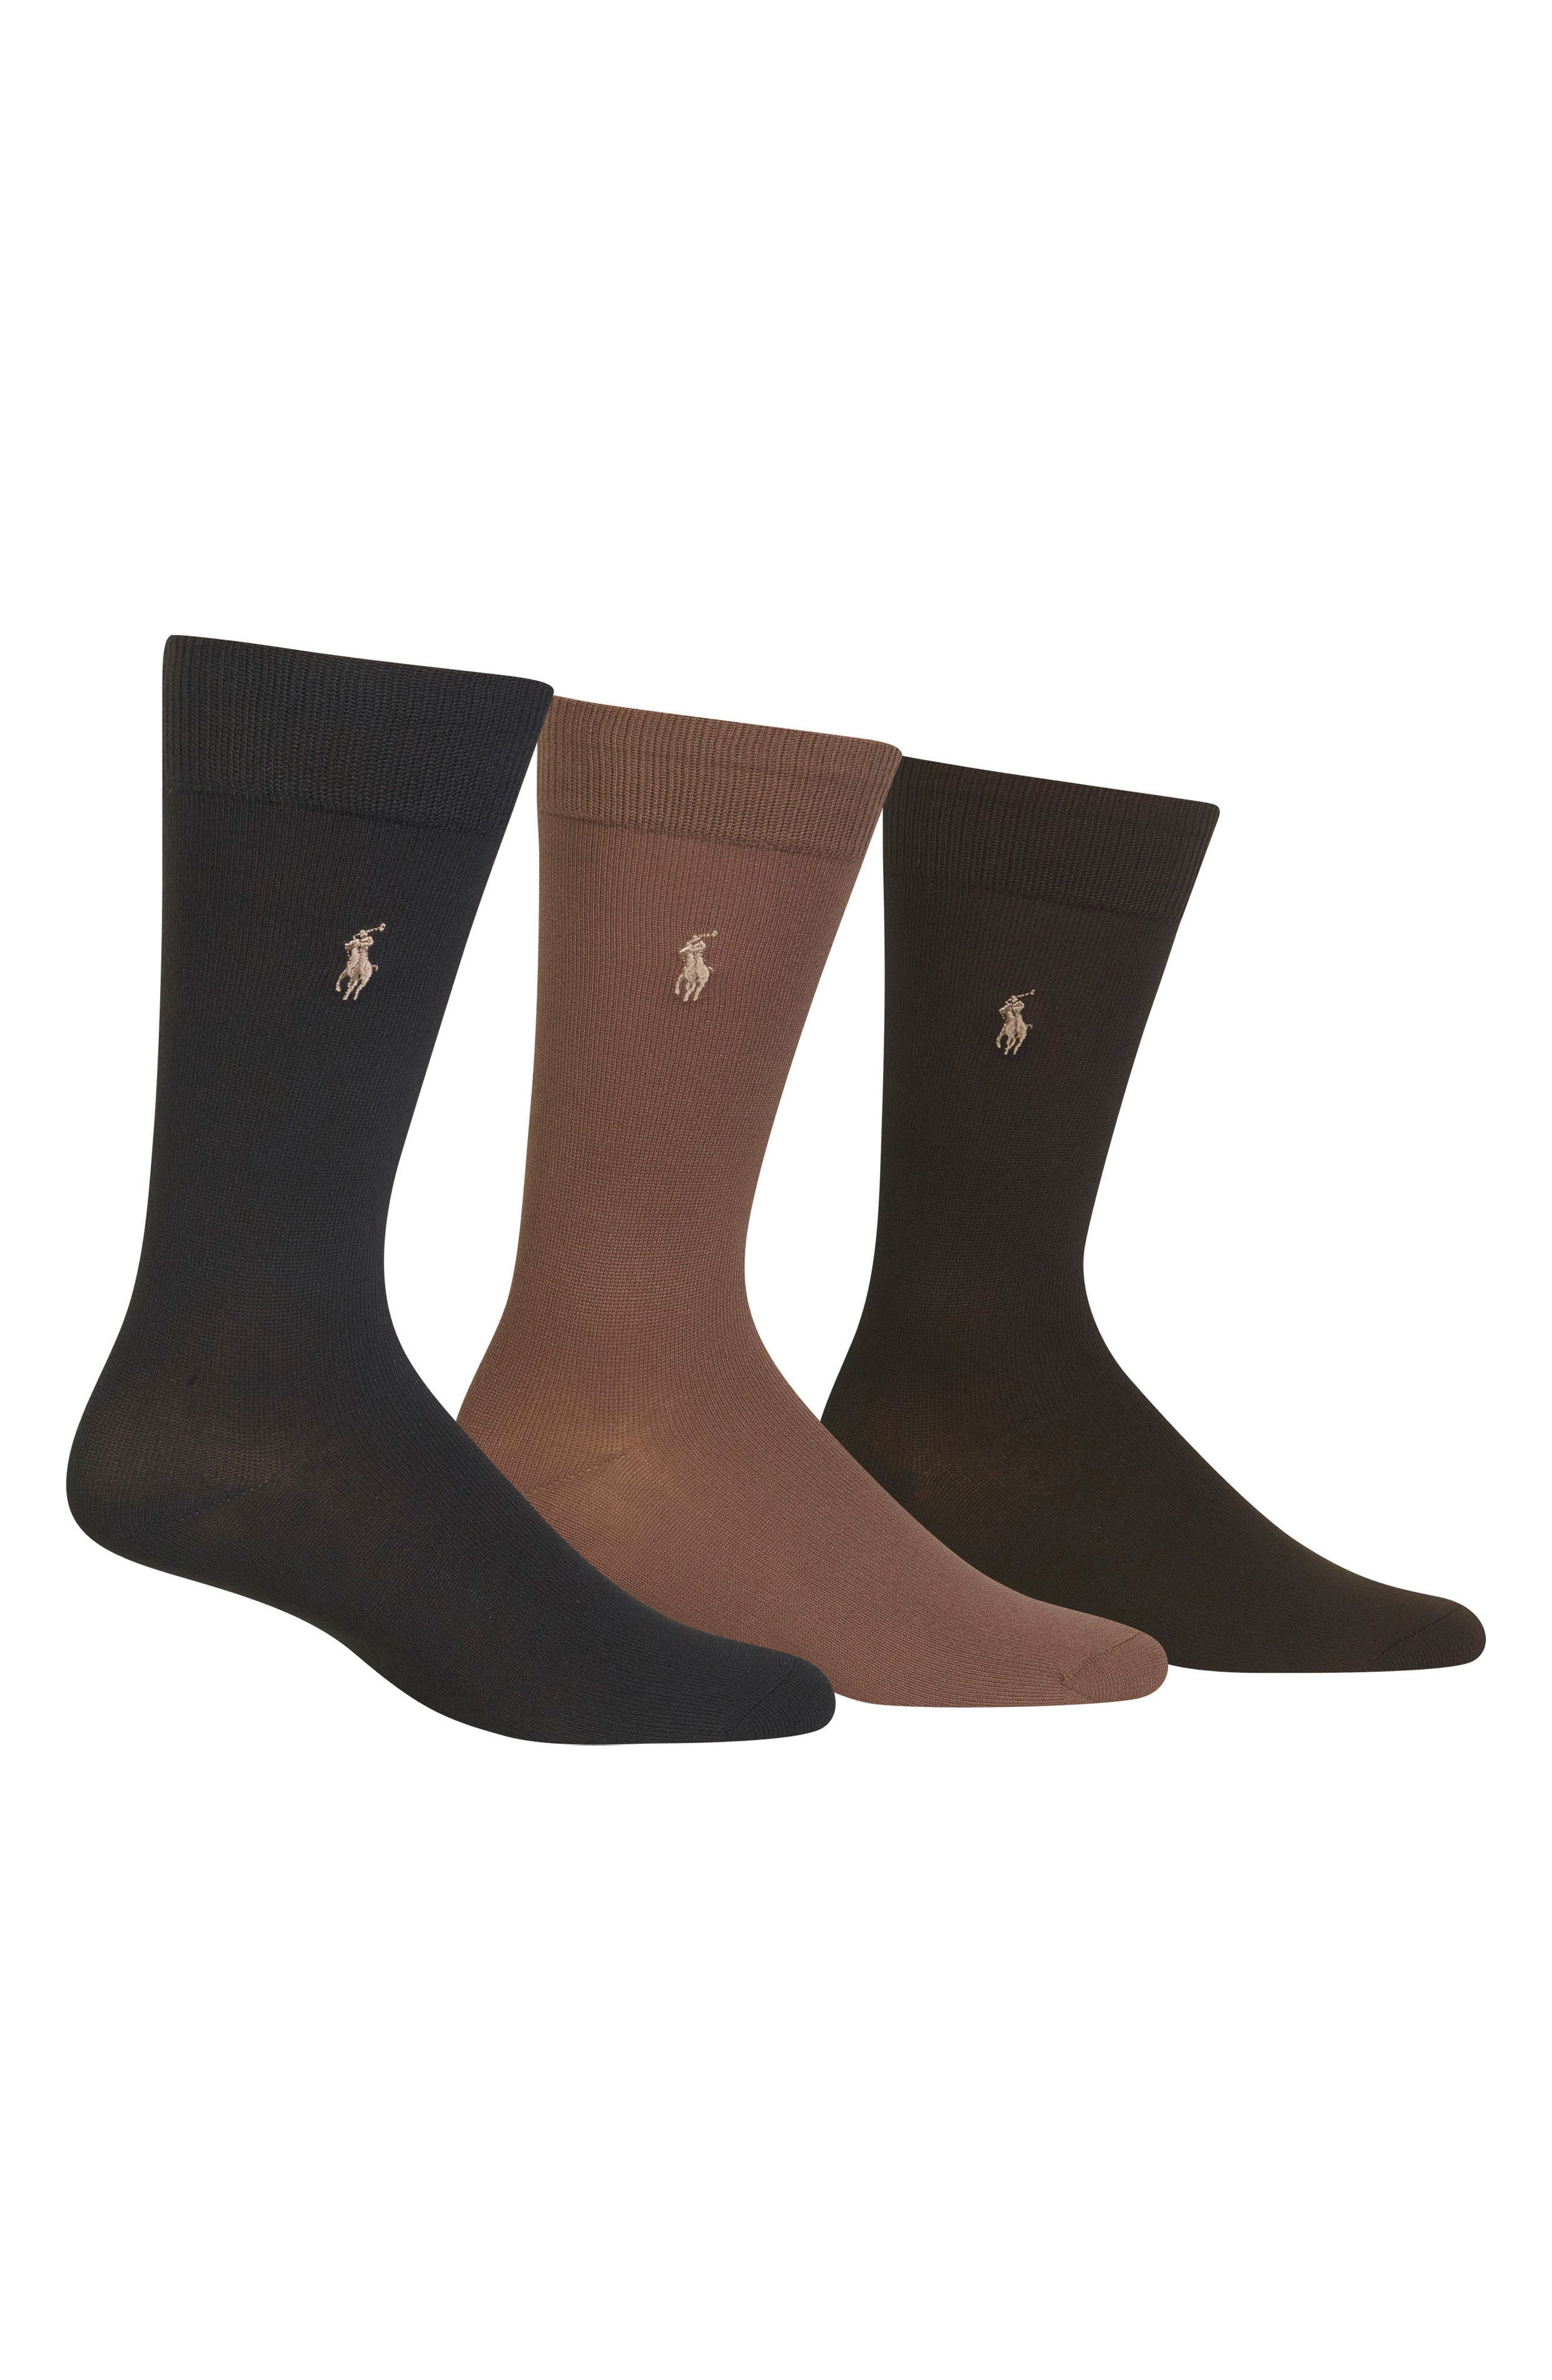 Assorted 3-Pack Supersoft Socks,                             Main thumbnail 1, color,                             Dark Olive/ Tobacco/ Brown